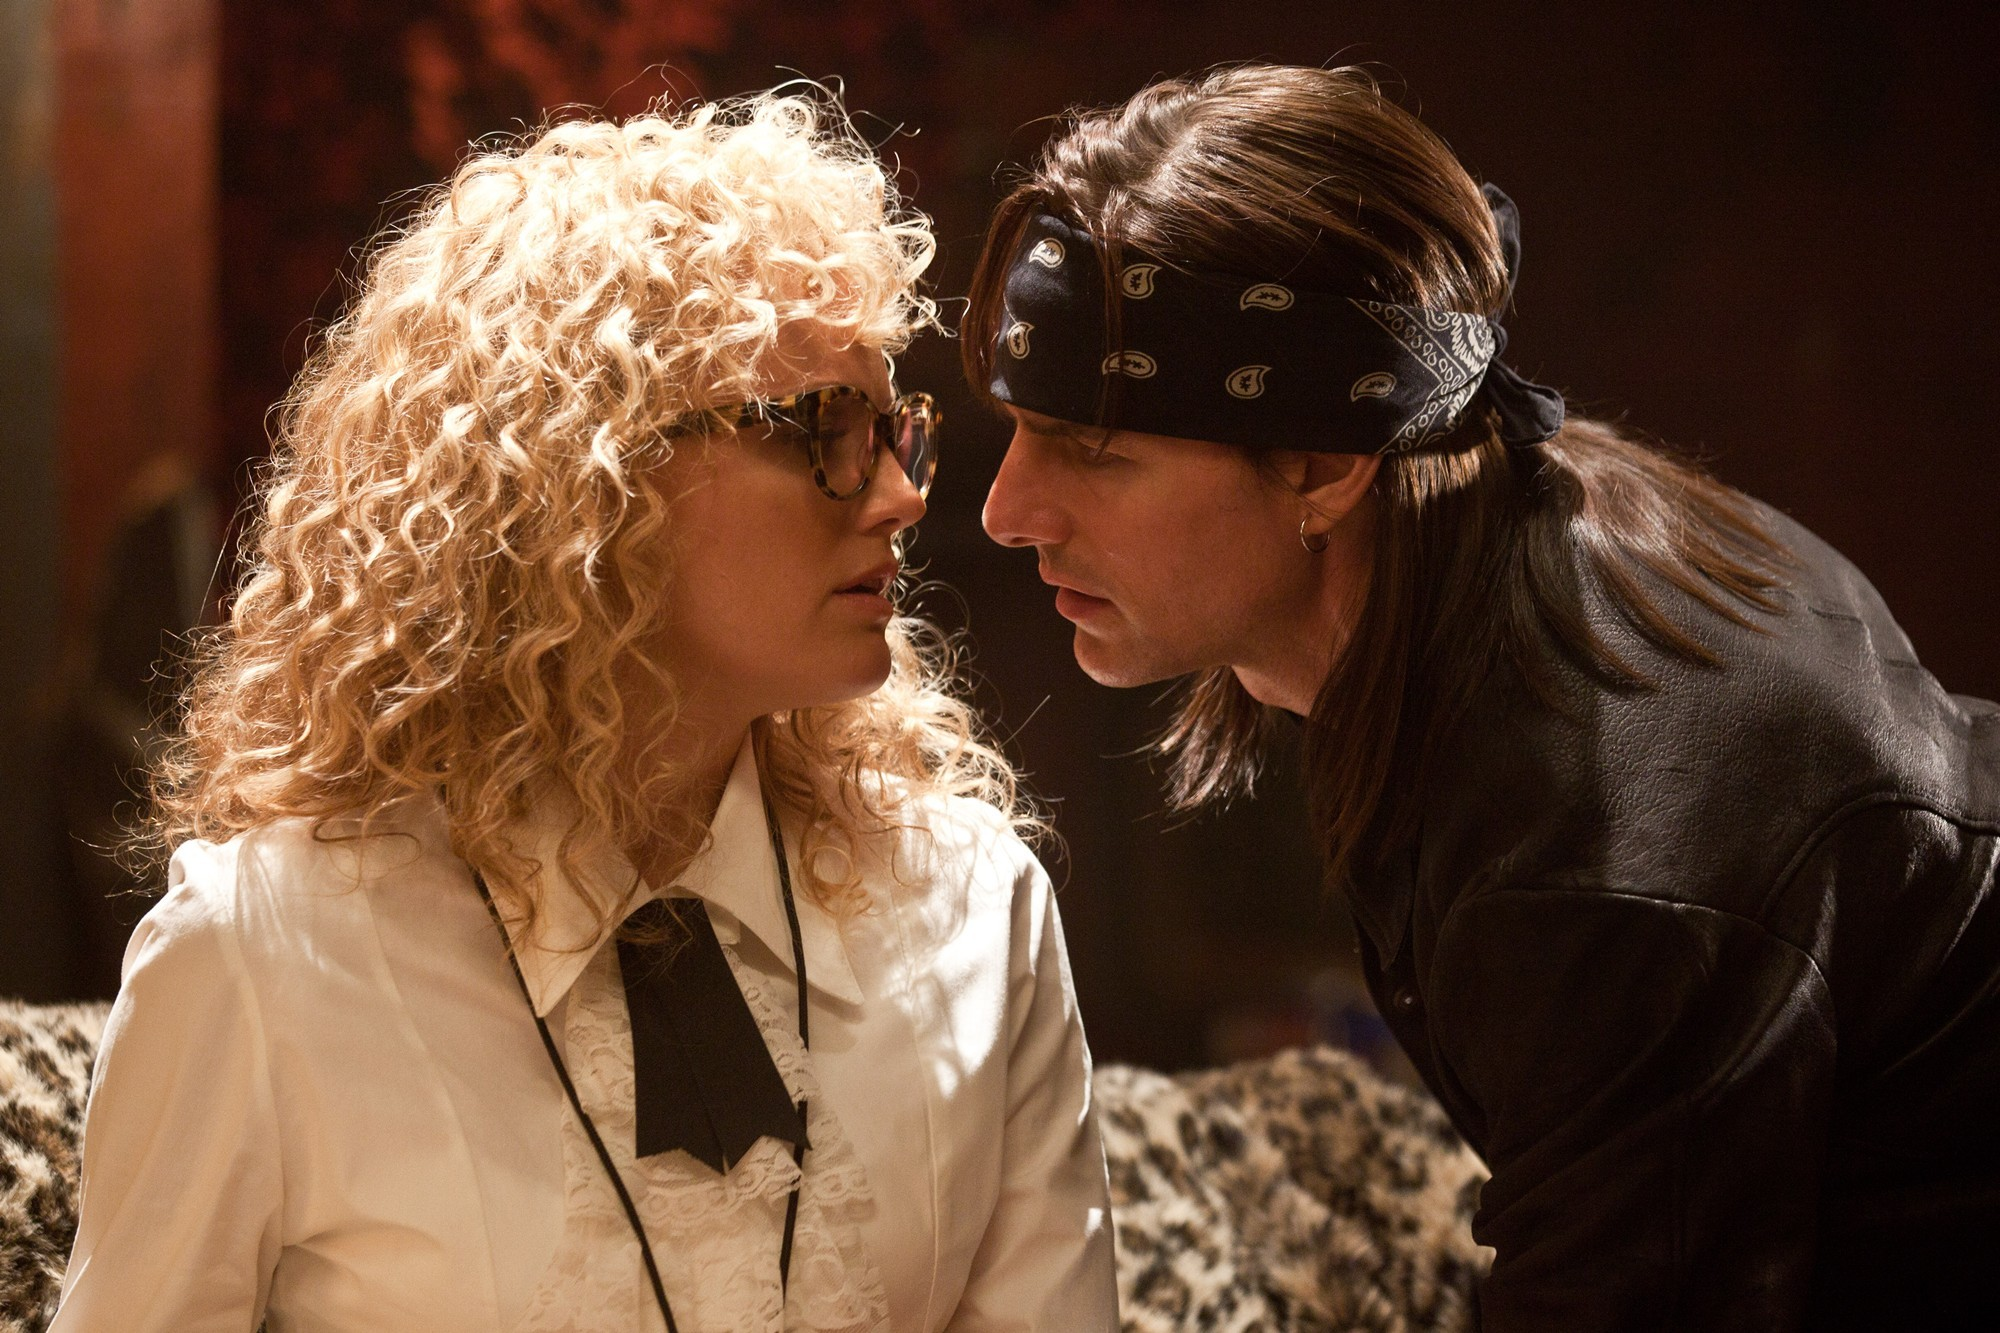 Malin Akerman stars as Constance Sack and Tom Cruise stars as Stacee Jaxx in Warner Bros. Pictures' Rock of Ages (2012)